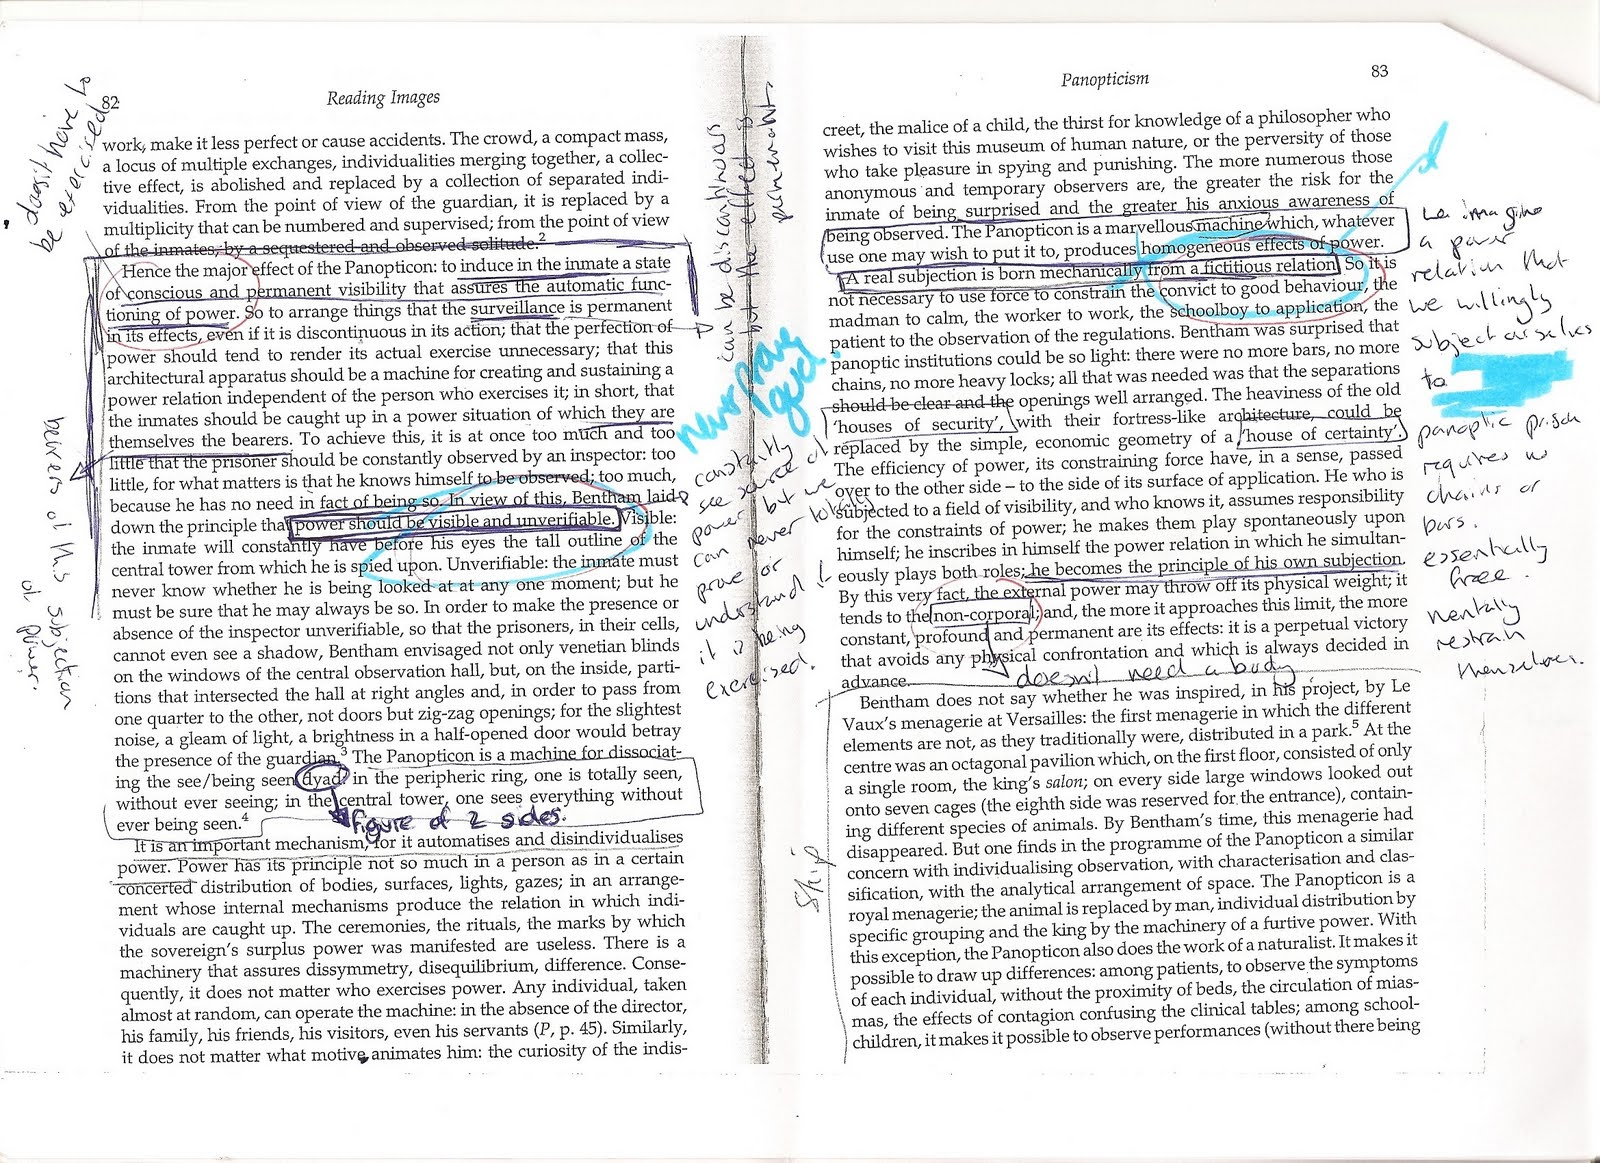 contextual and theoretical studies essay reading michel foucault  essay reading michel foucault panopticism